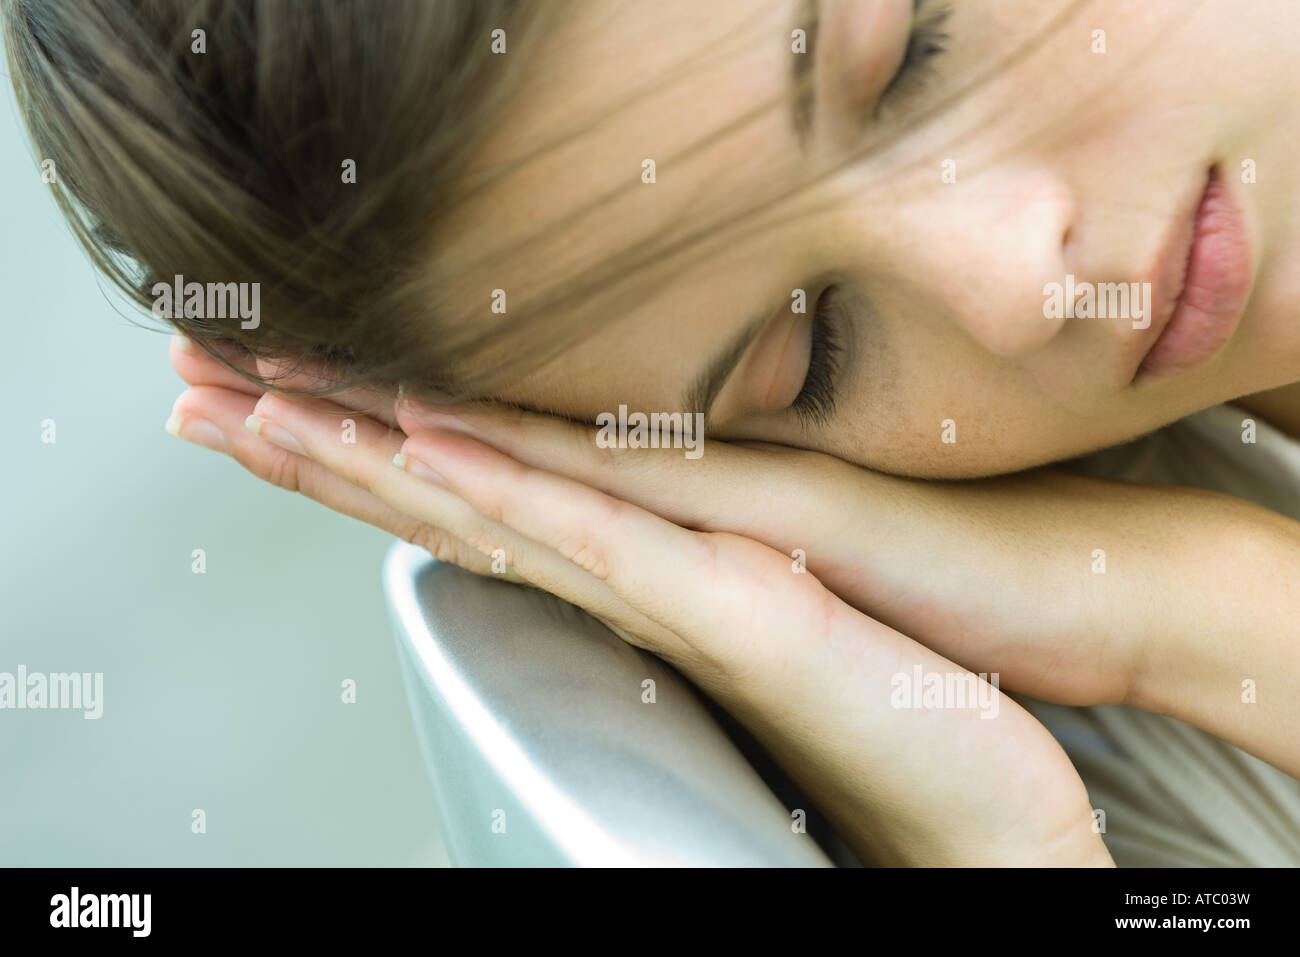 Teenage girl resting head on clasped hands, eyes closed, close-up - Stock Image